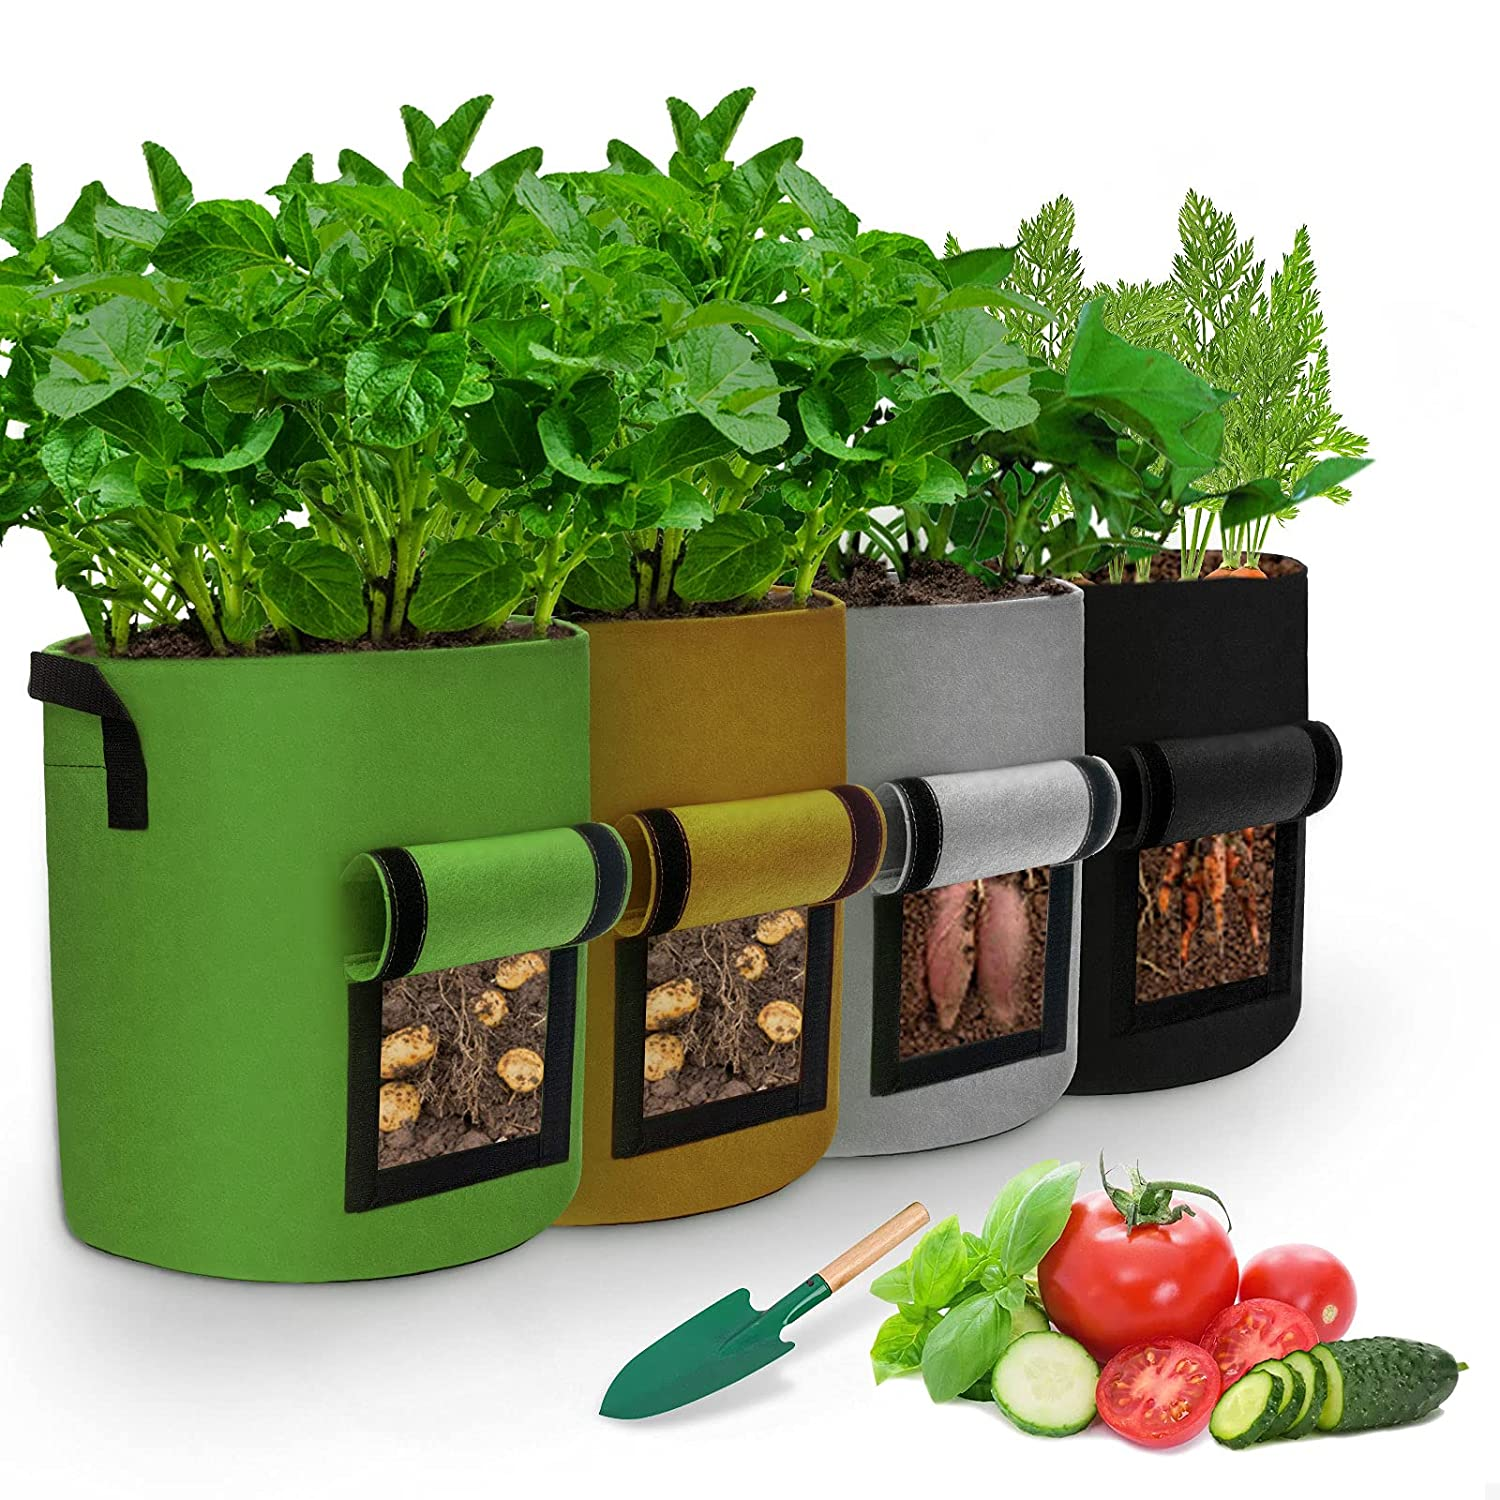 Potato Grow Bags, Heavy Duty Thickened Nonwoven Fabric, Containers Pots